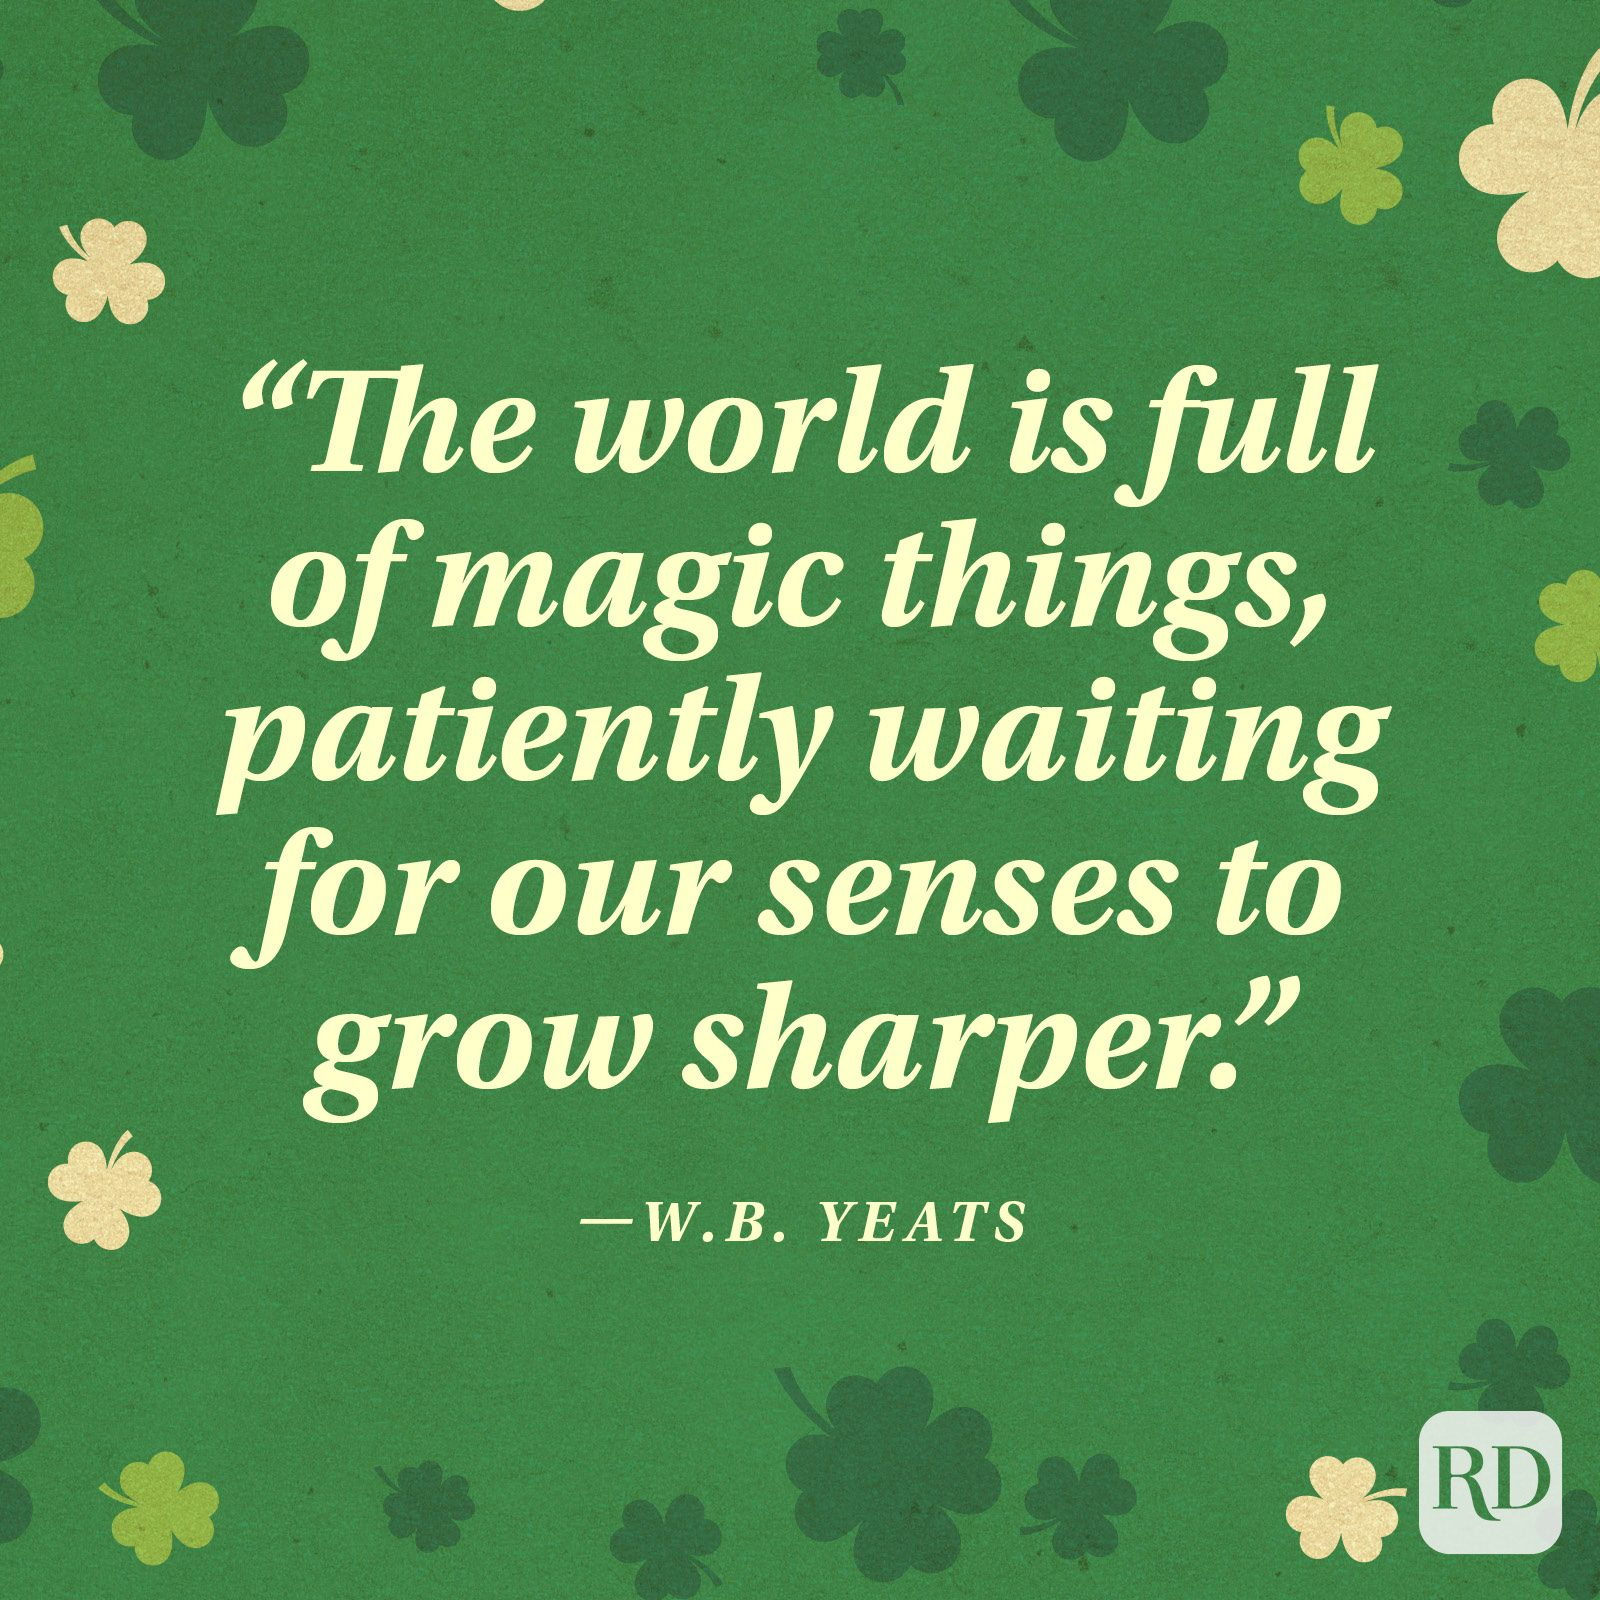 """The world is full of magic things, patiently waiting for our senses to grow sharper."" —W.B. Yeats"